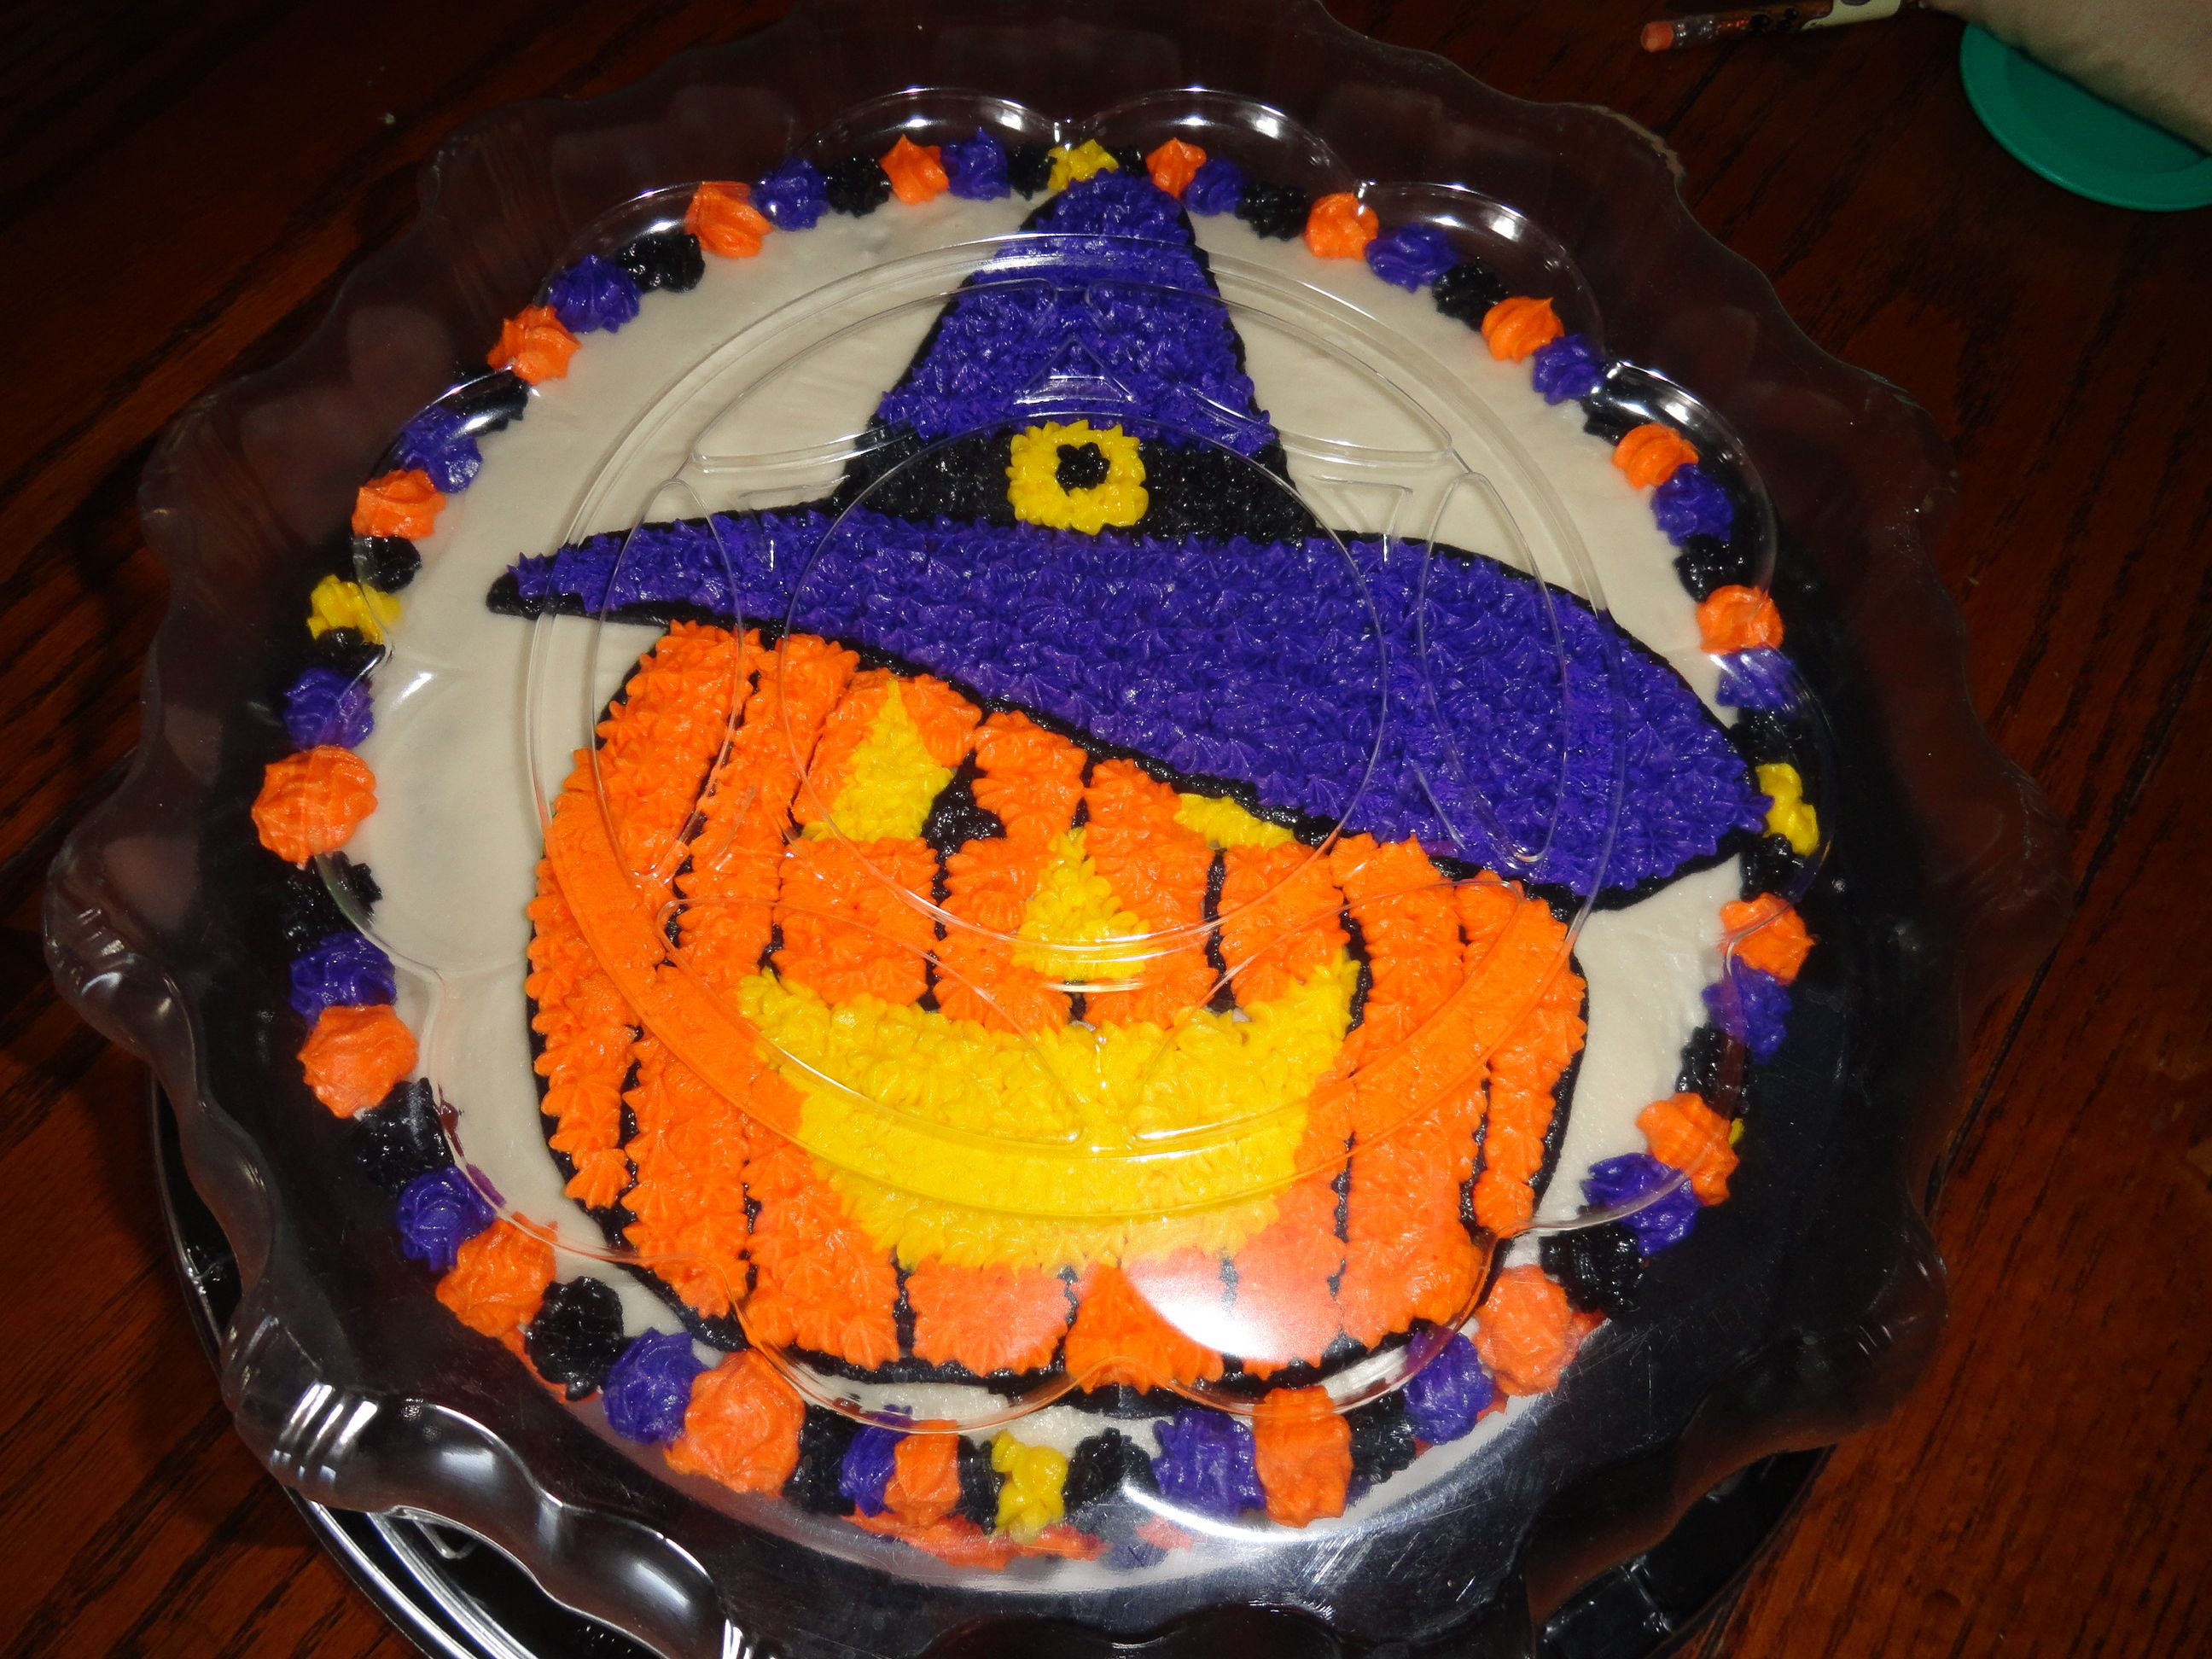 Halloween cake My cakes Pinterest Halloween cakes, Cake and - Halloween Cake Decorating Ideas